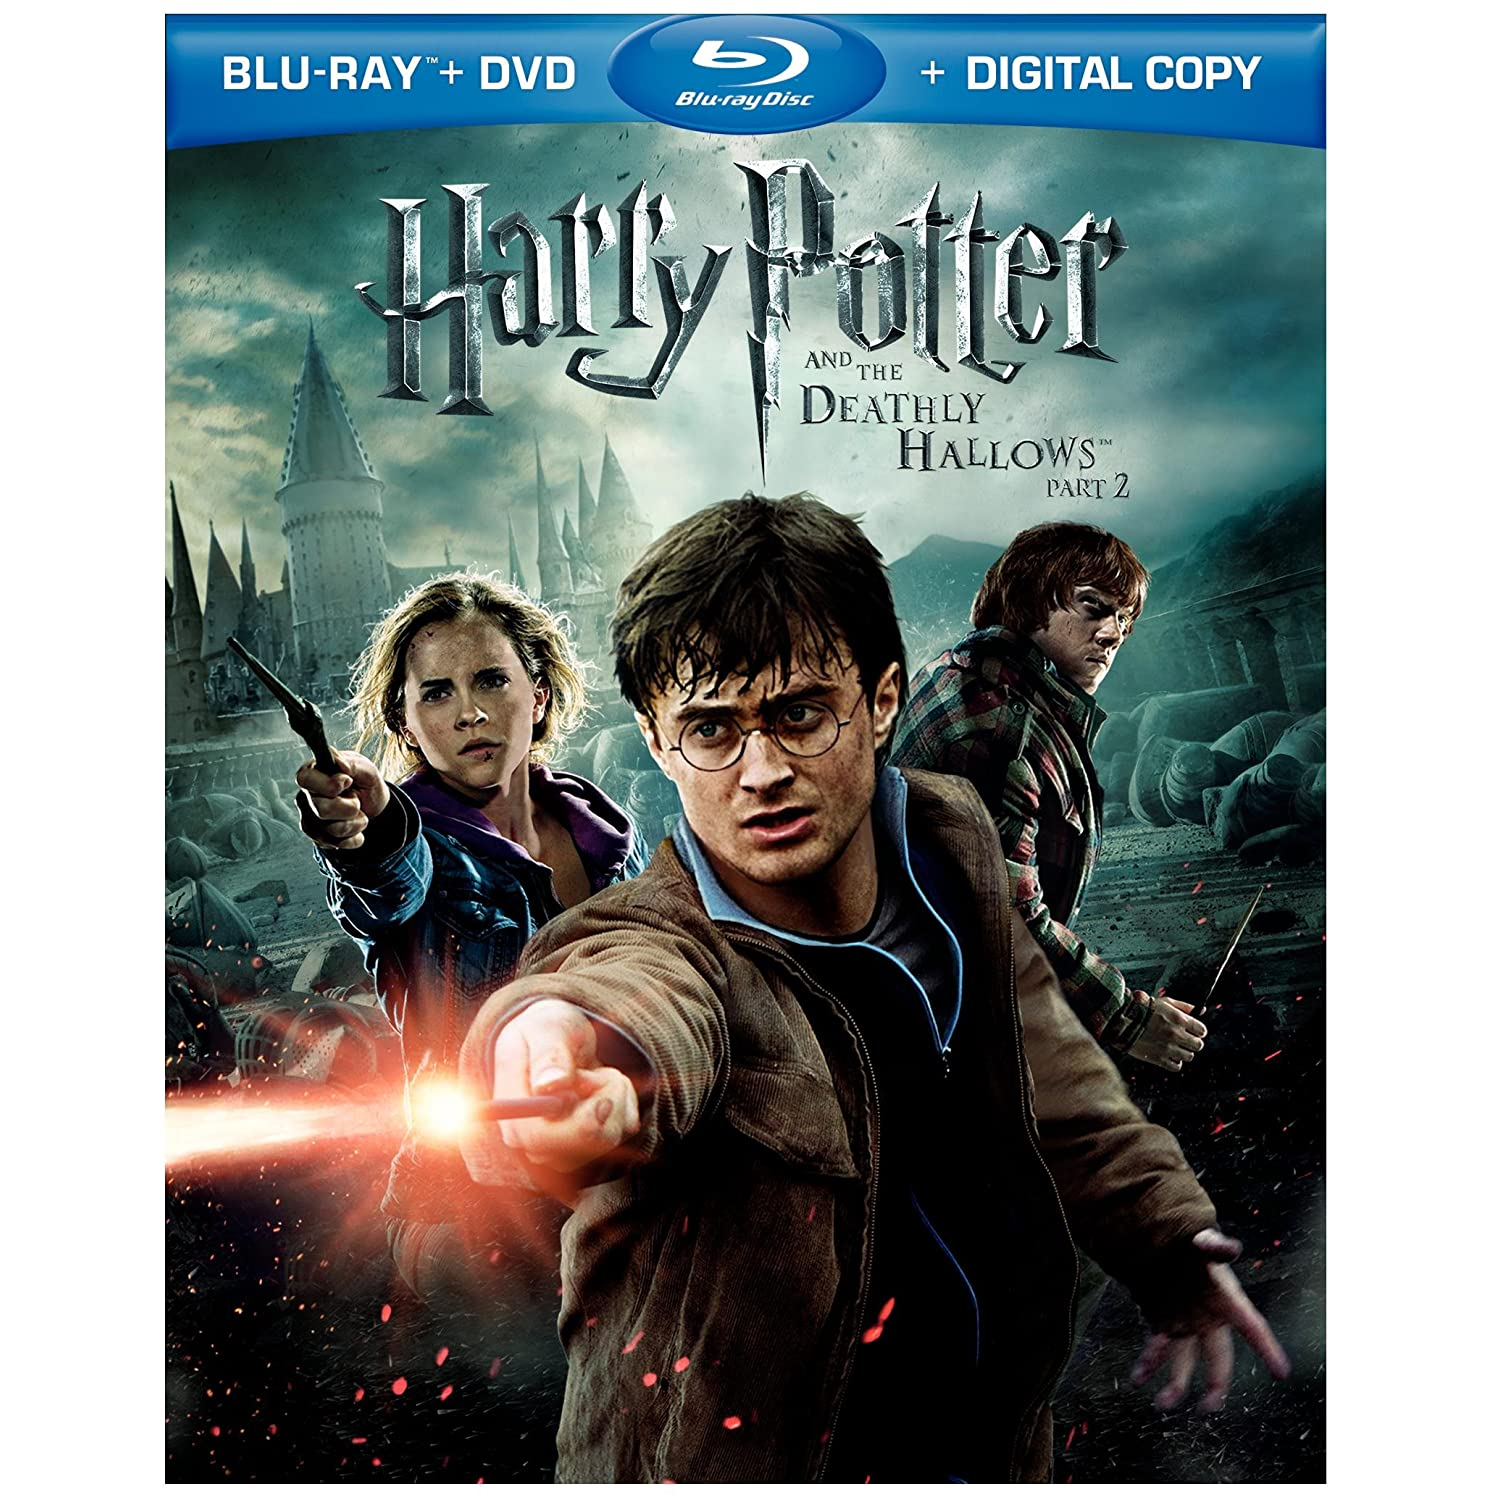 moviemaxs movie harry potter and the deathly hallows part 2 three disc blu ray movie dvd. Black Bedroom Furniture Sets. Home Design Ideas